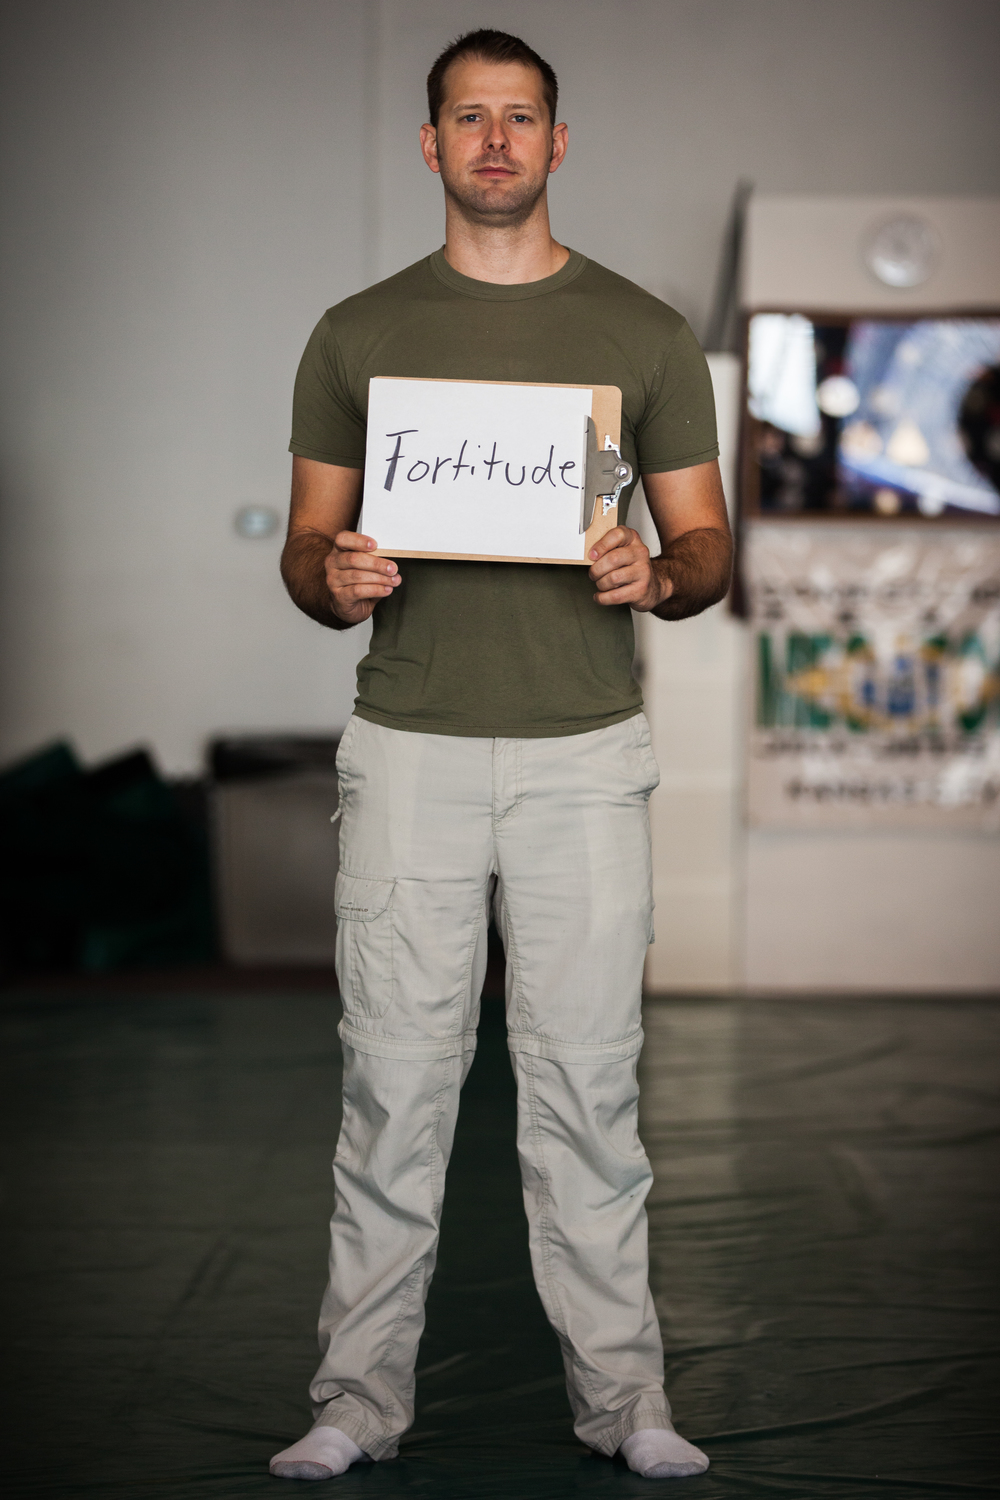 Man holding sign saying fortitude.